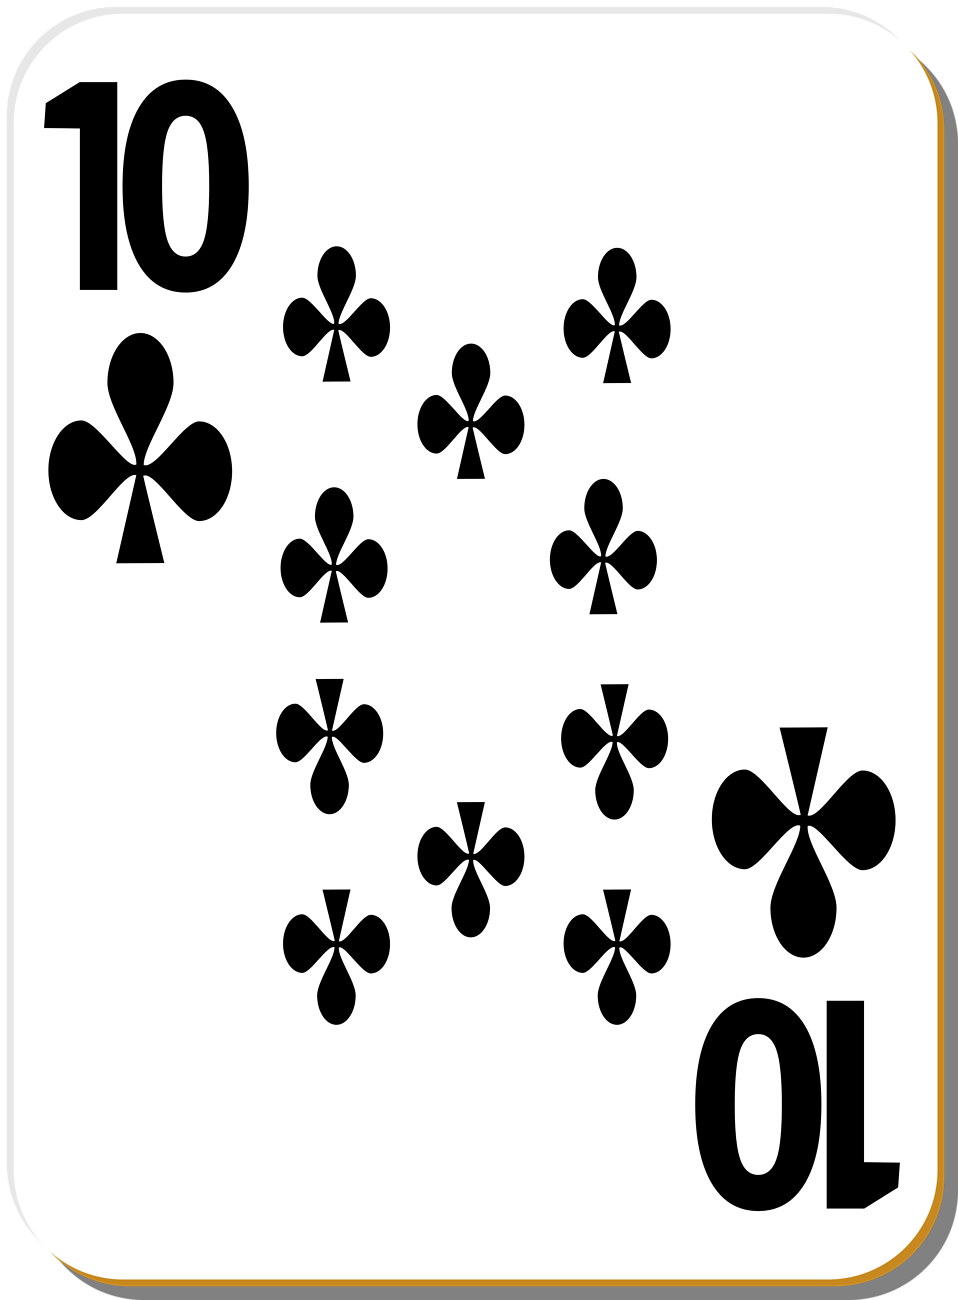 Clubs Playing Cards Clipart